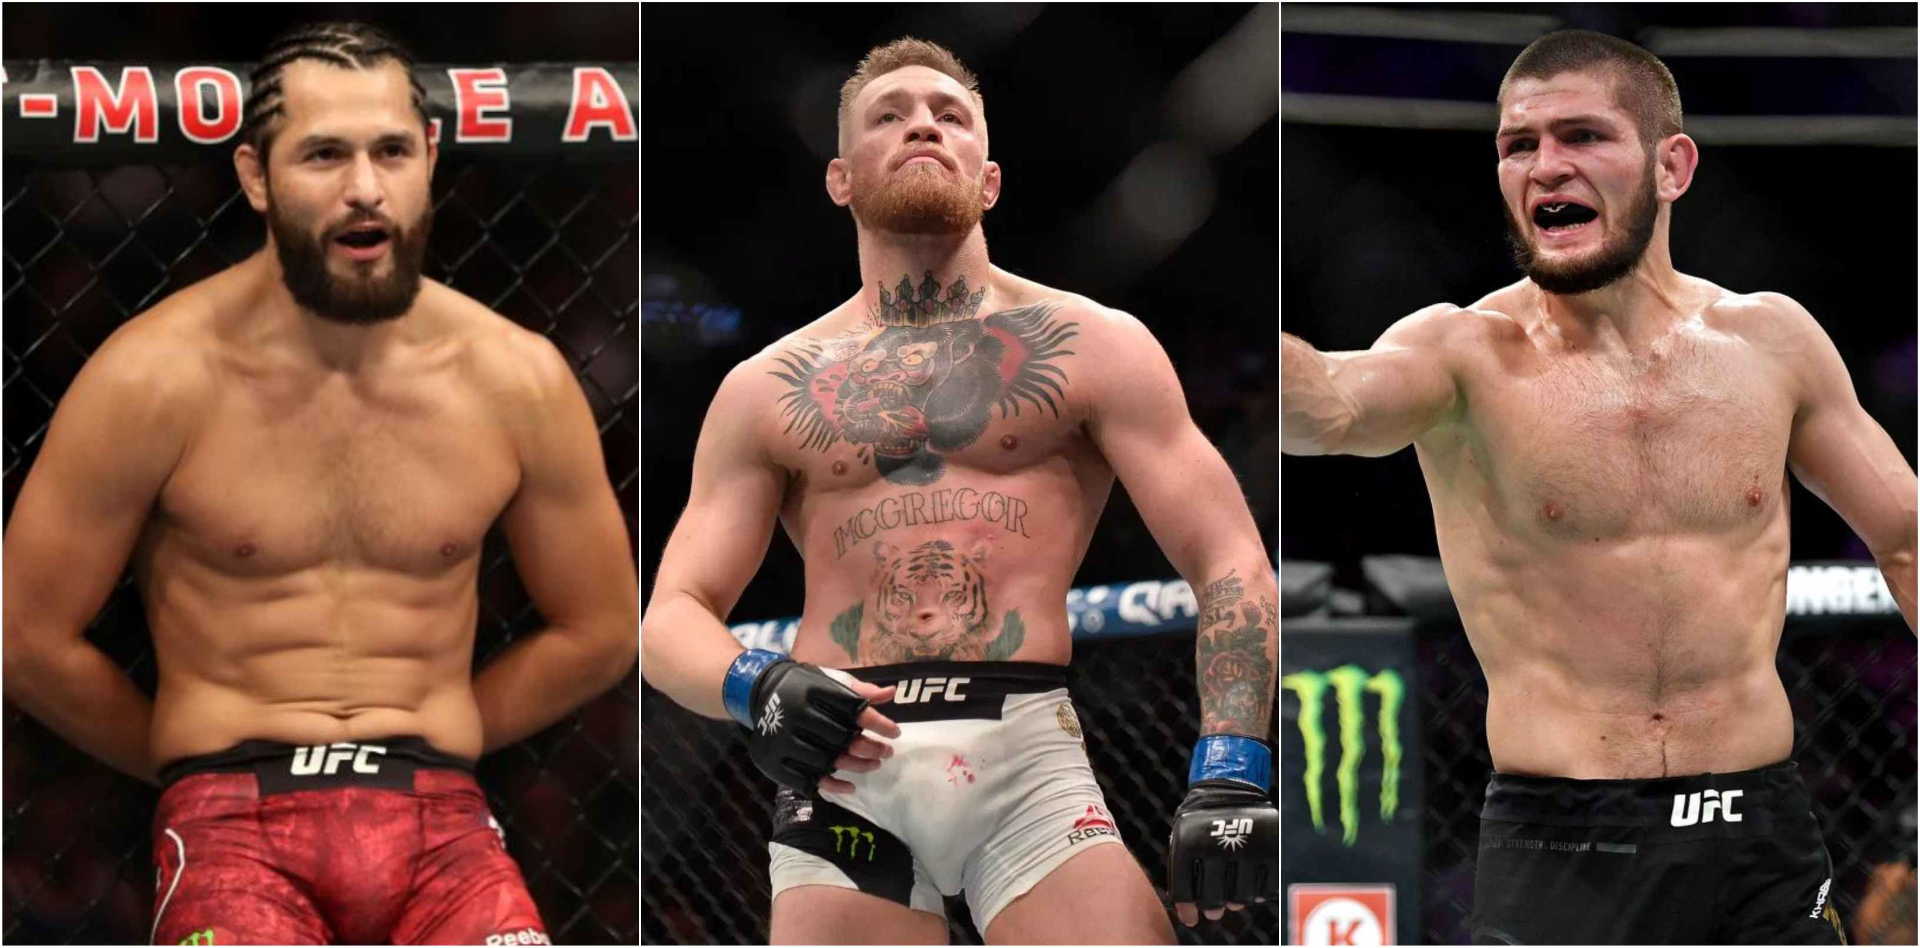 UFC President Dana White claims Conor McGregor has two men in sight after Cerrone fight: Khabib or Masvidal - McGregor